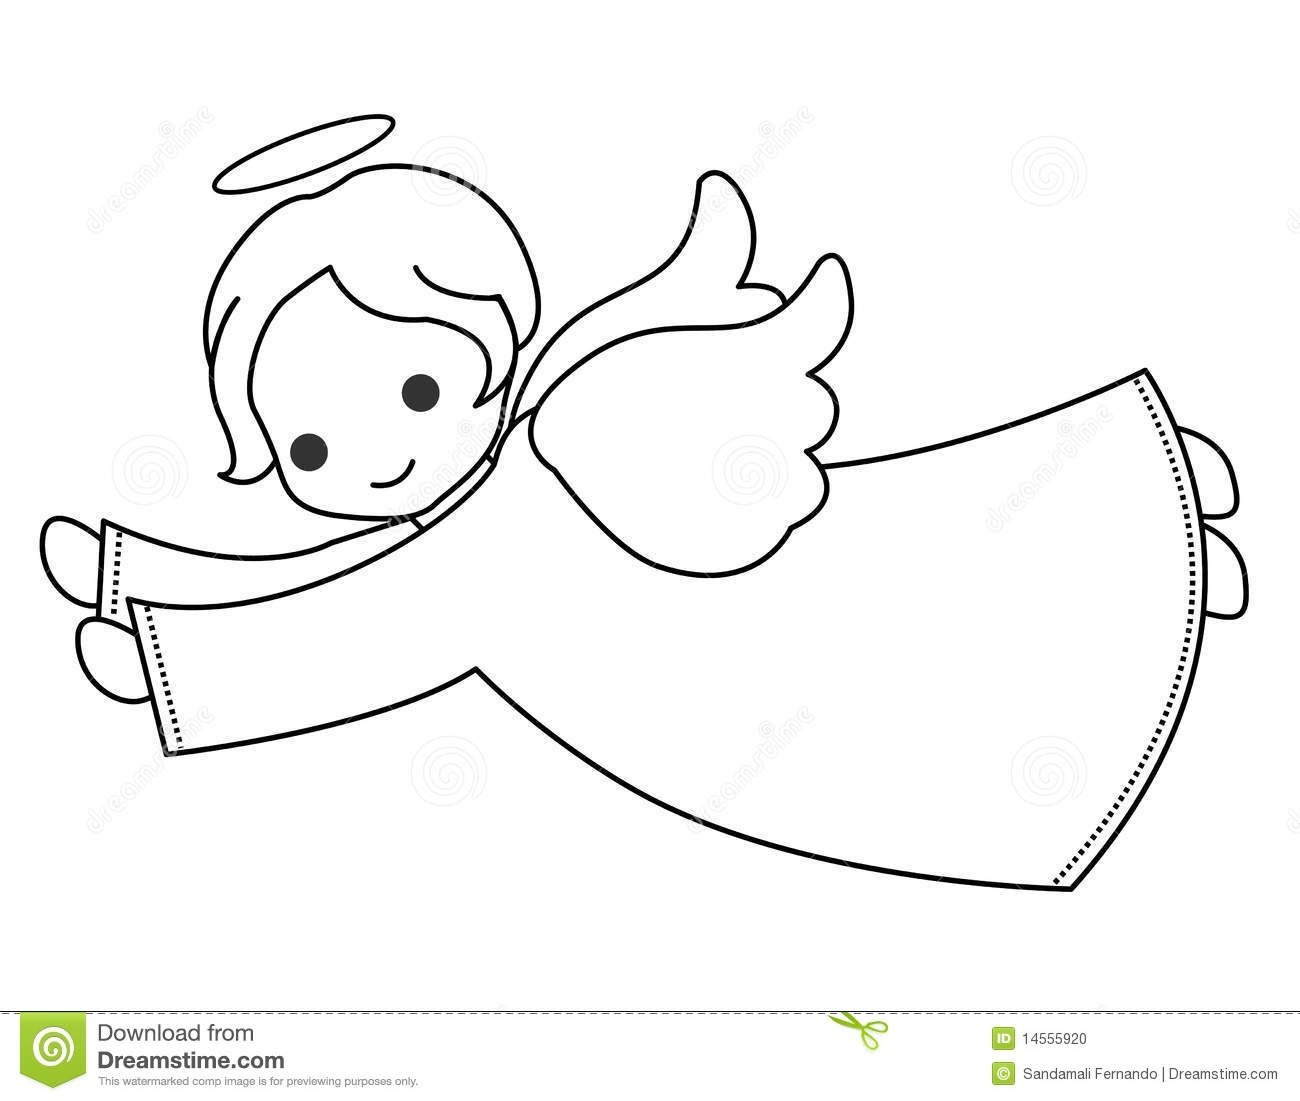 angels+baby+vector - Buscar con Google | Ángeles | Pinterest ...